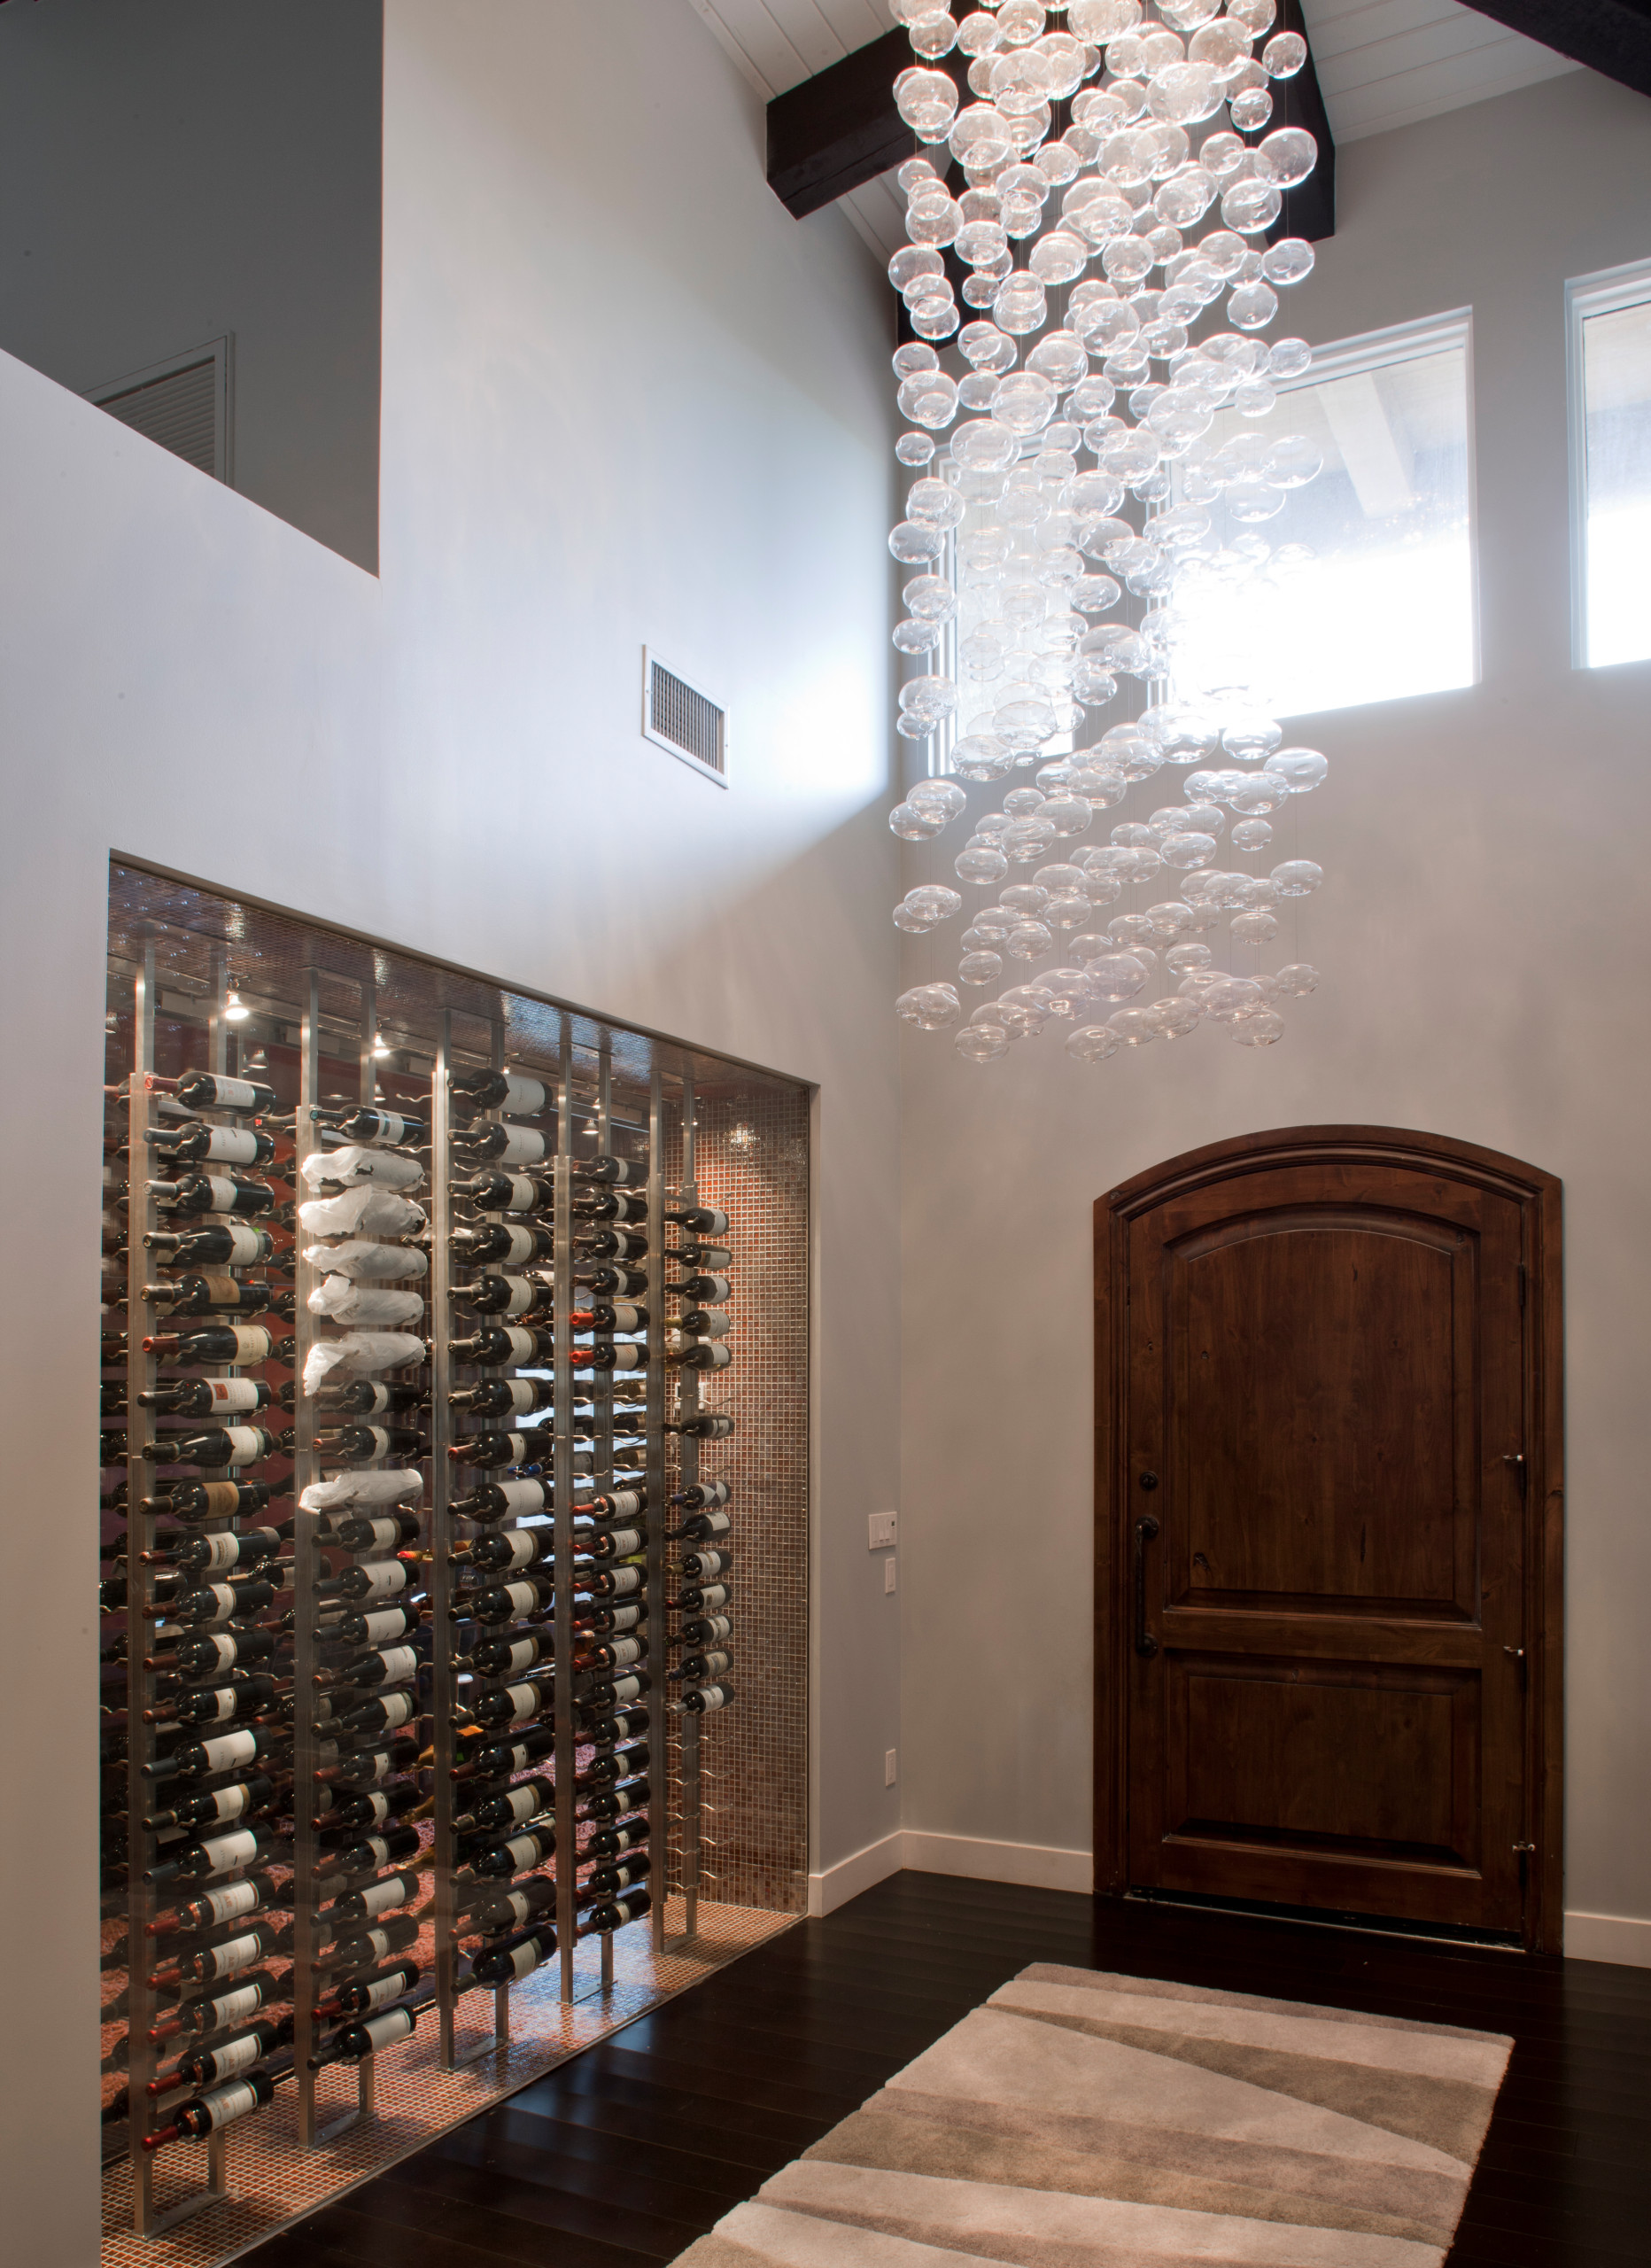 2014 FIRST PLACE WINNER * ASID AWARD - Entry & Wine Storage